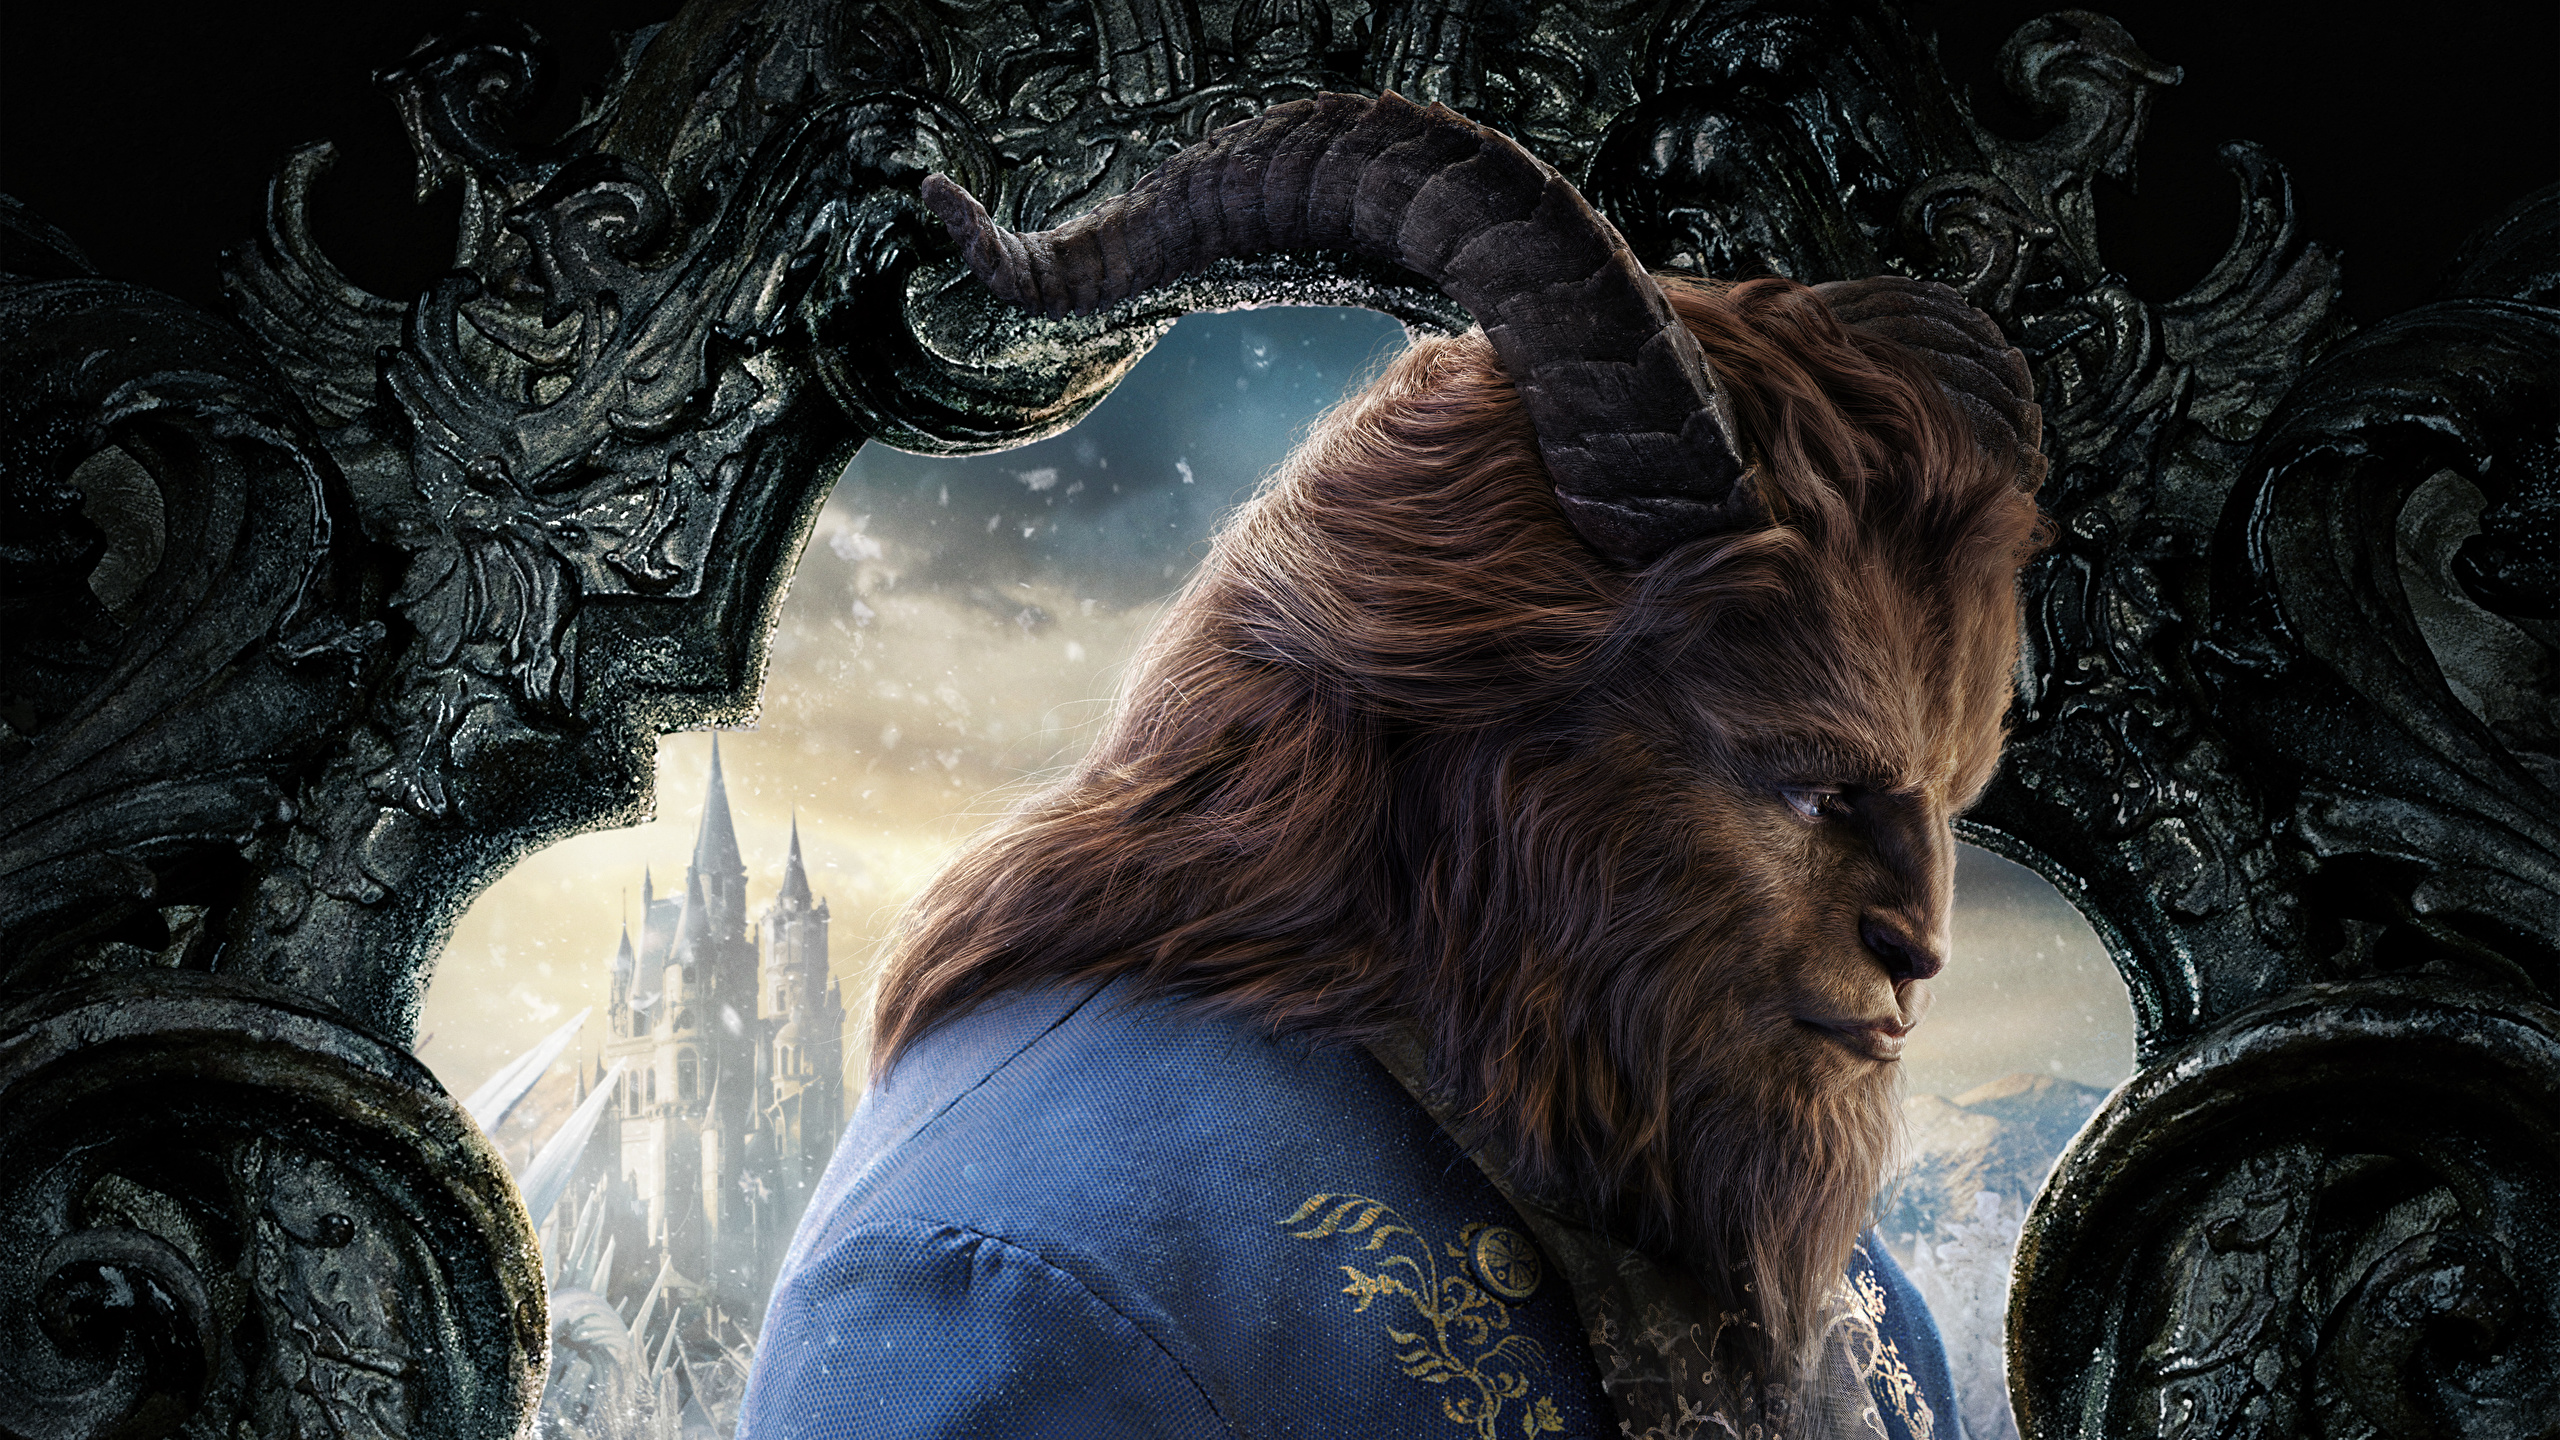 Images Beauty And The Beast 2017 Monsters Horns Movies 2560x1440